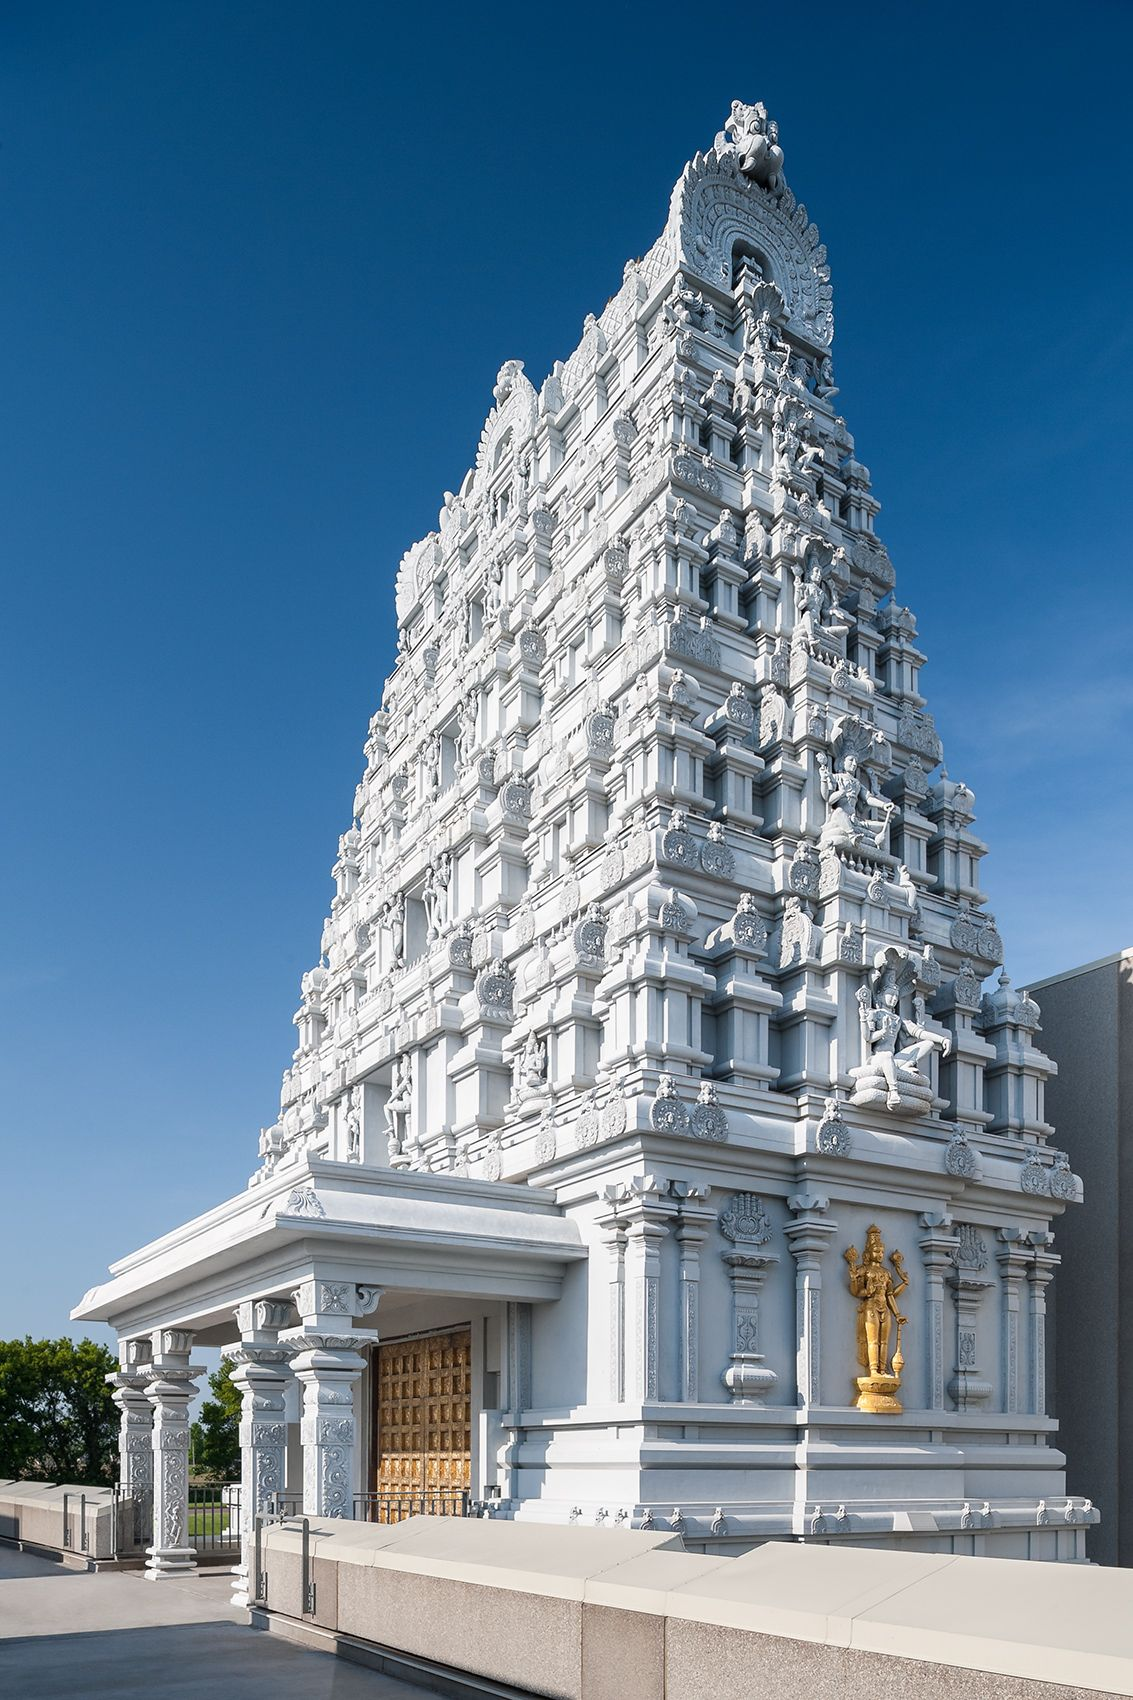 HINDU TEMPLE OF MINNESOTA